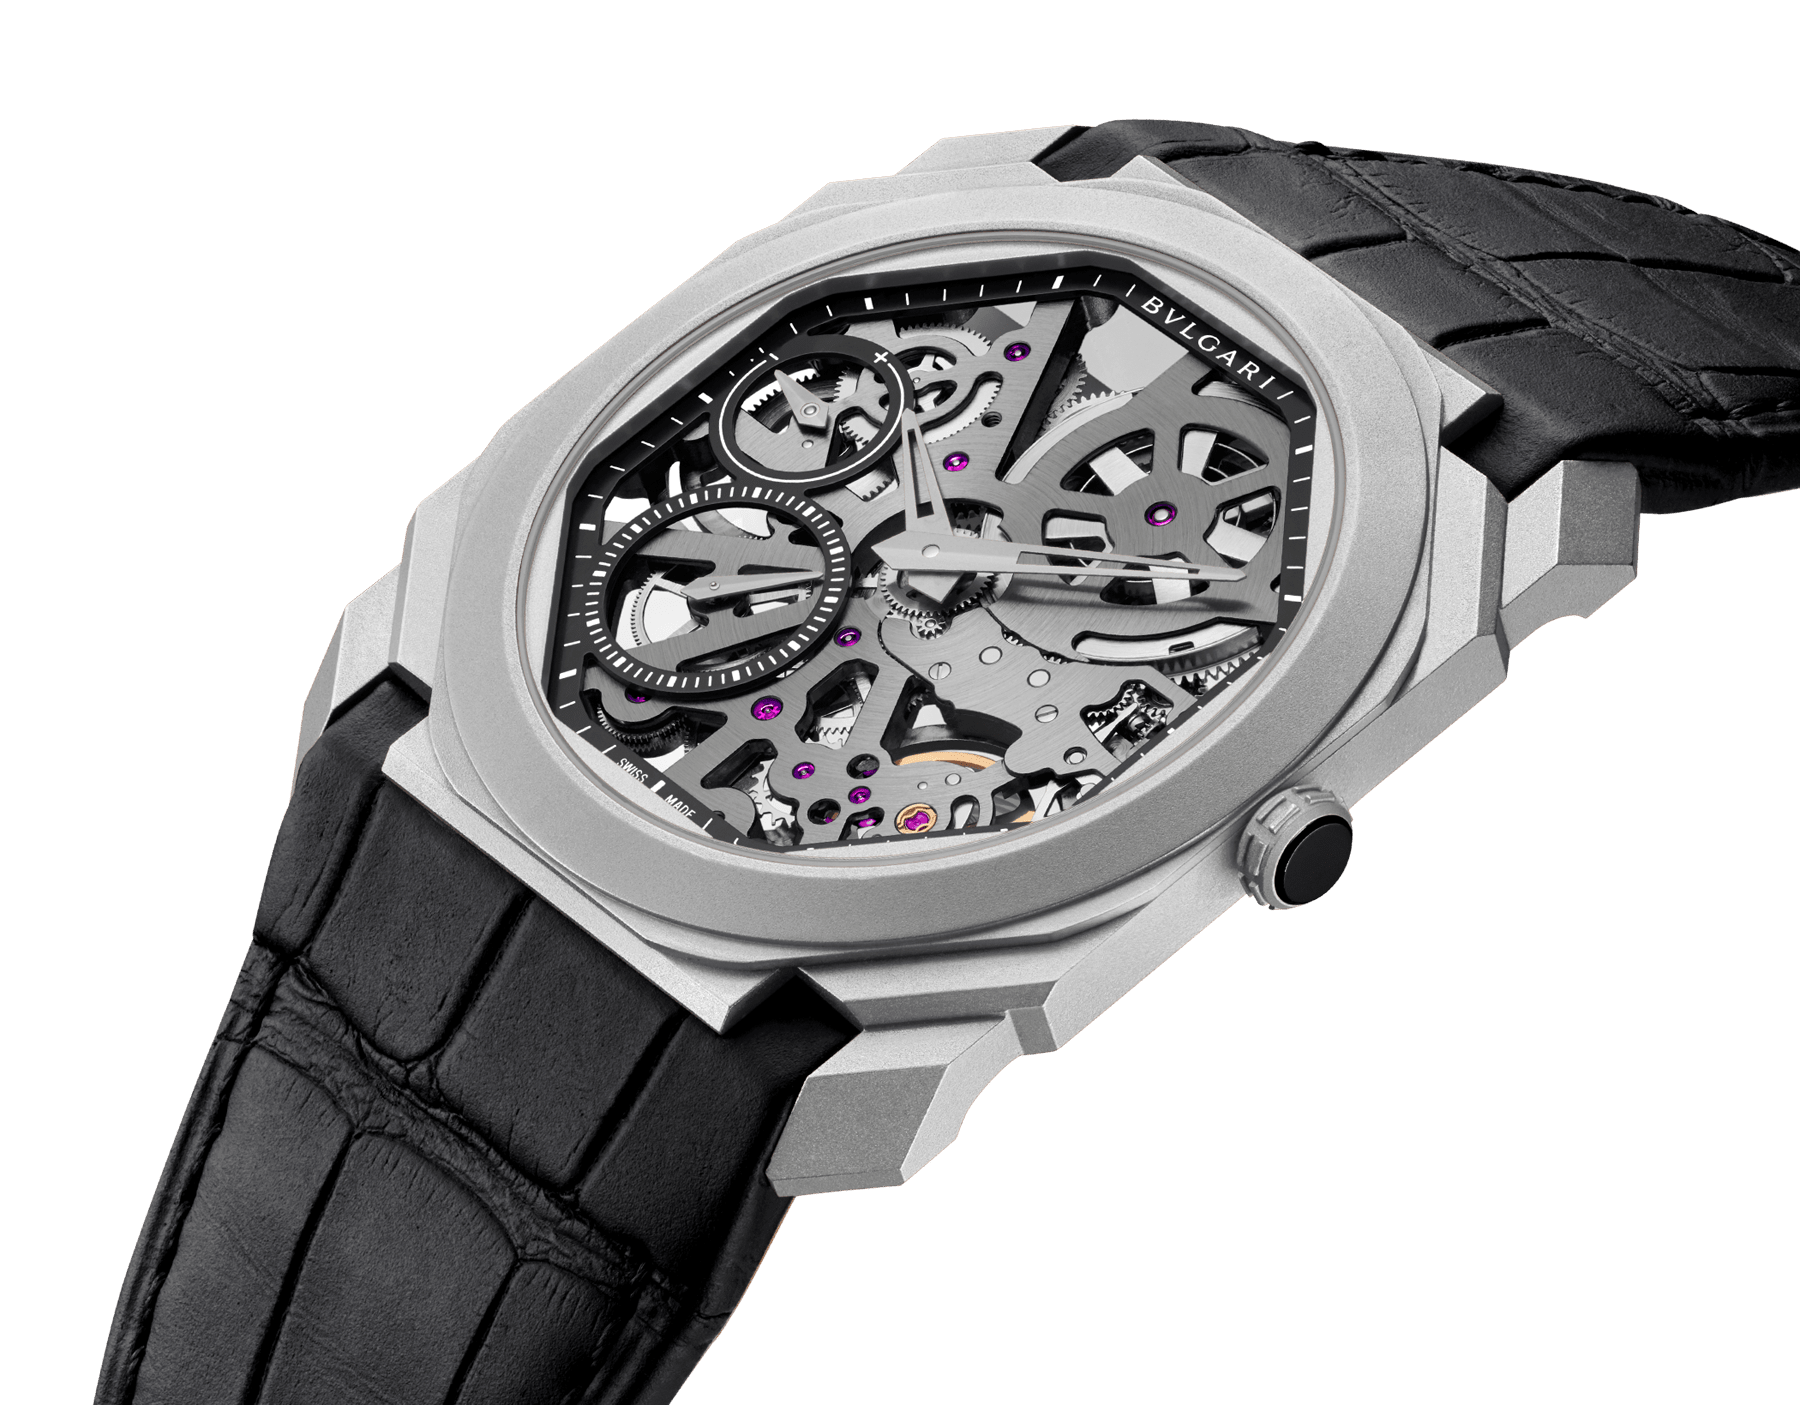 Octo Finissimo watch with ultra-thin skeletonized mechanical manufacture movement, manual winding and small seconds, titanium case, transparent dial and black alligator bracelet 102714 image 2